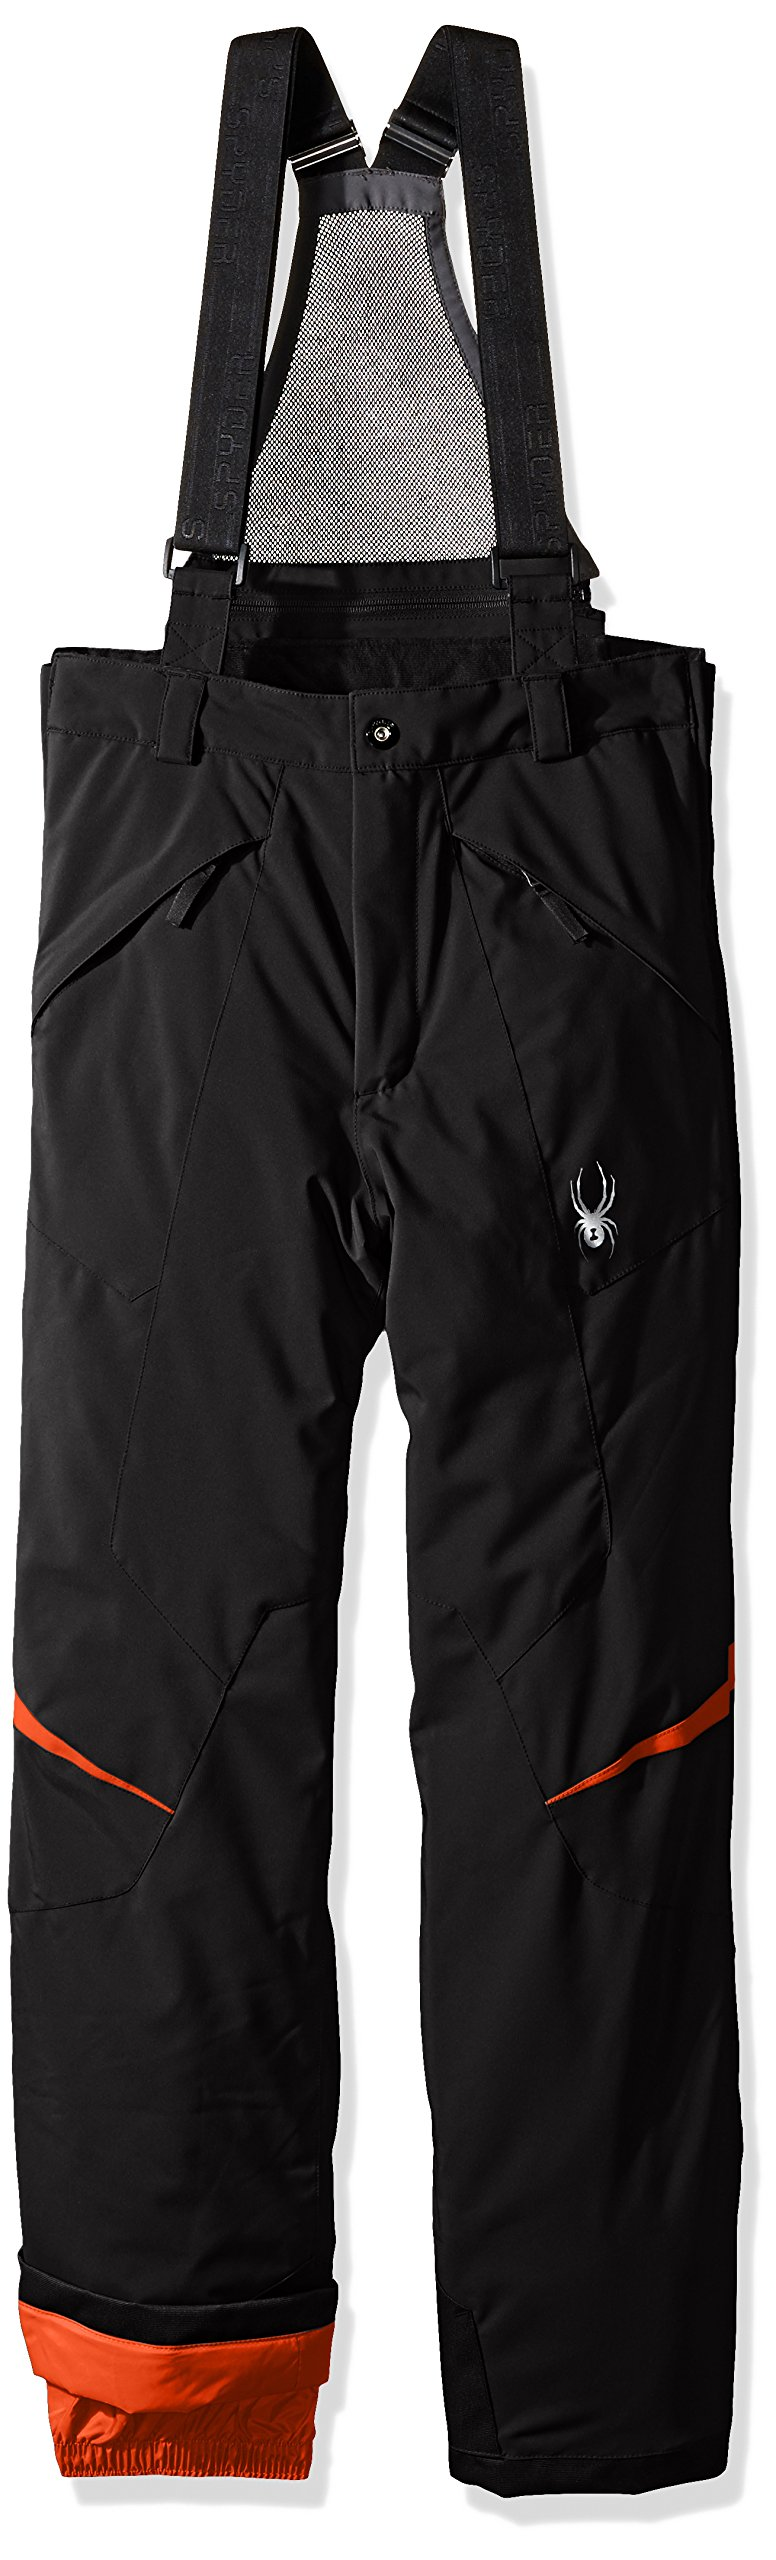 Spyder Boys Force Pants, Size 20, Black/Rage by Spyder